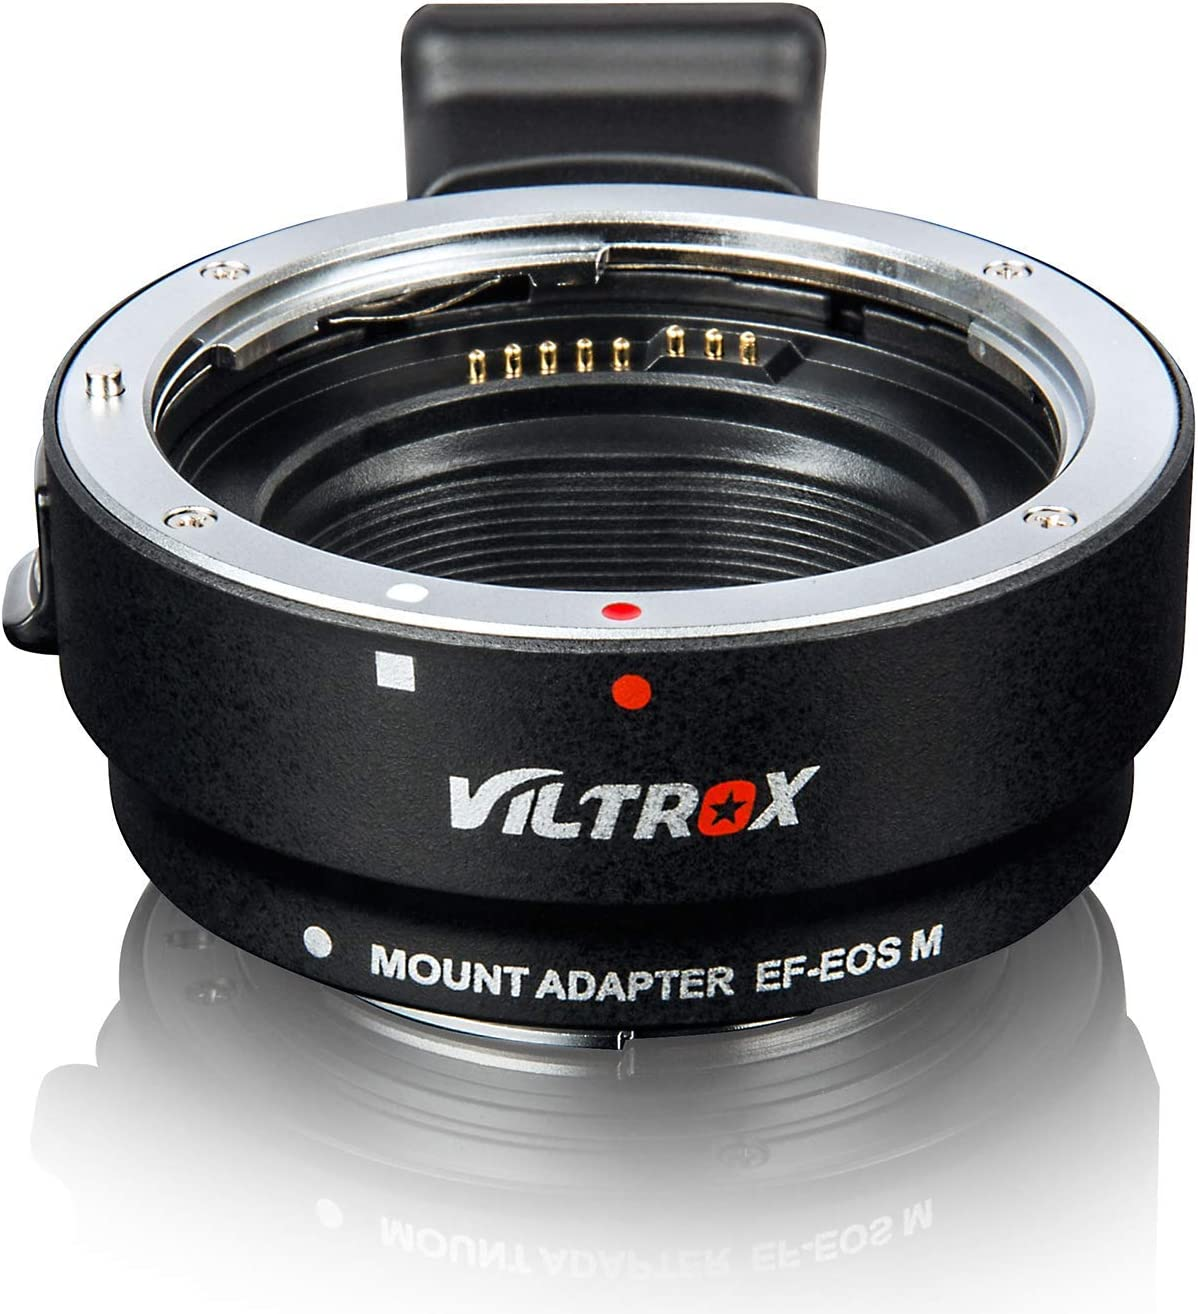 Lens Adapter Ring Metallic Ring Lens Adapter with Manual Exposure Focusing for Sony AF Lenses and mirrorless Sony Cameras Practical for Taking Pictures